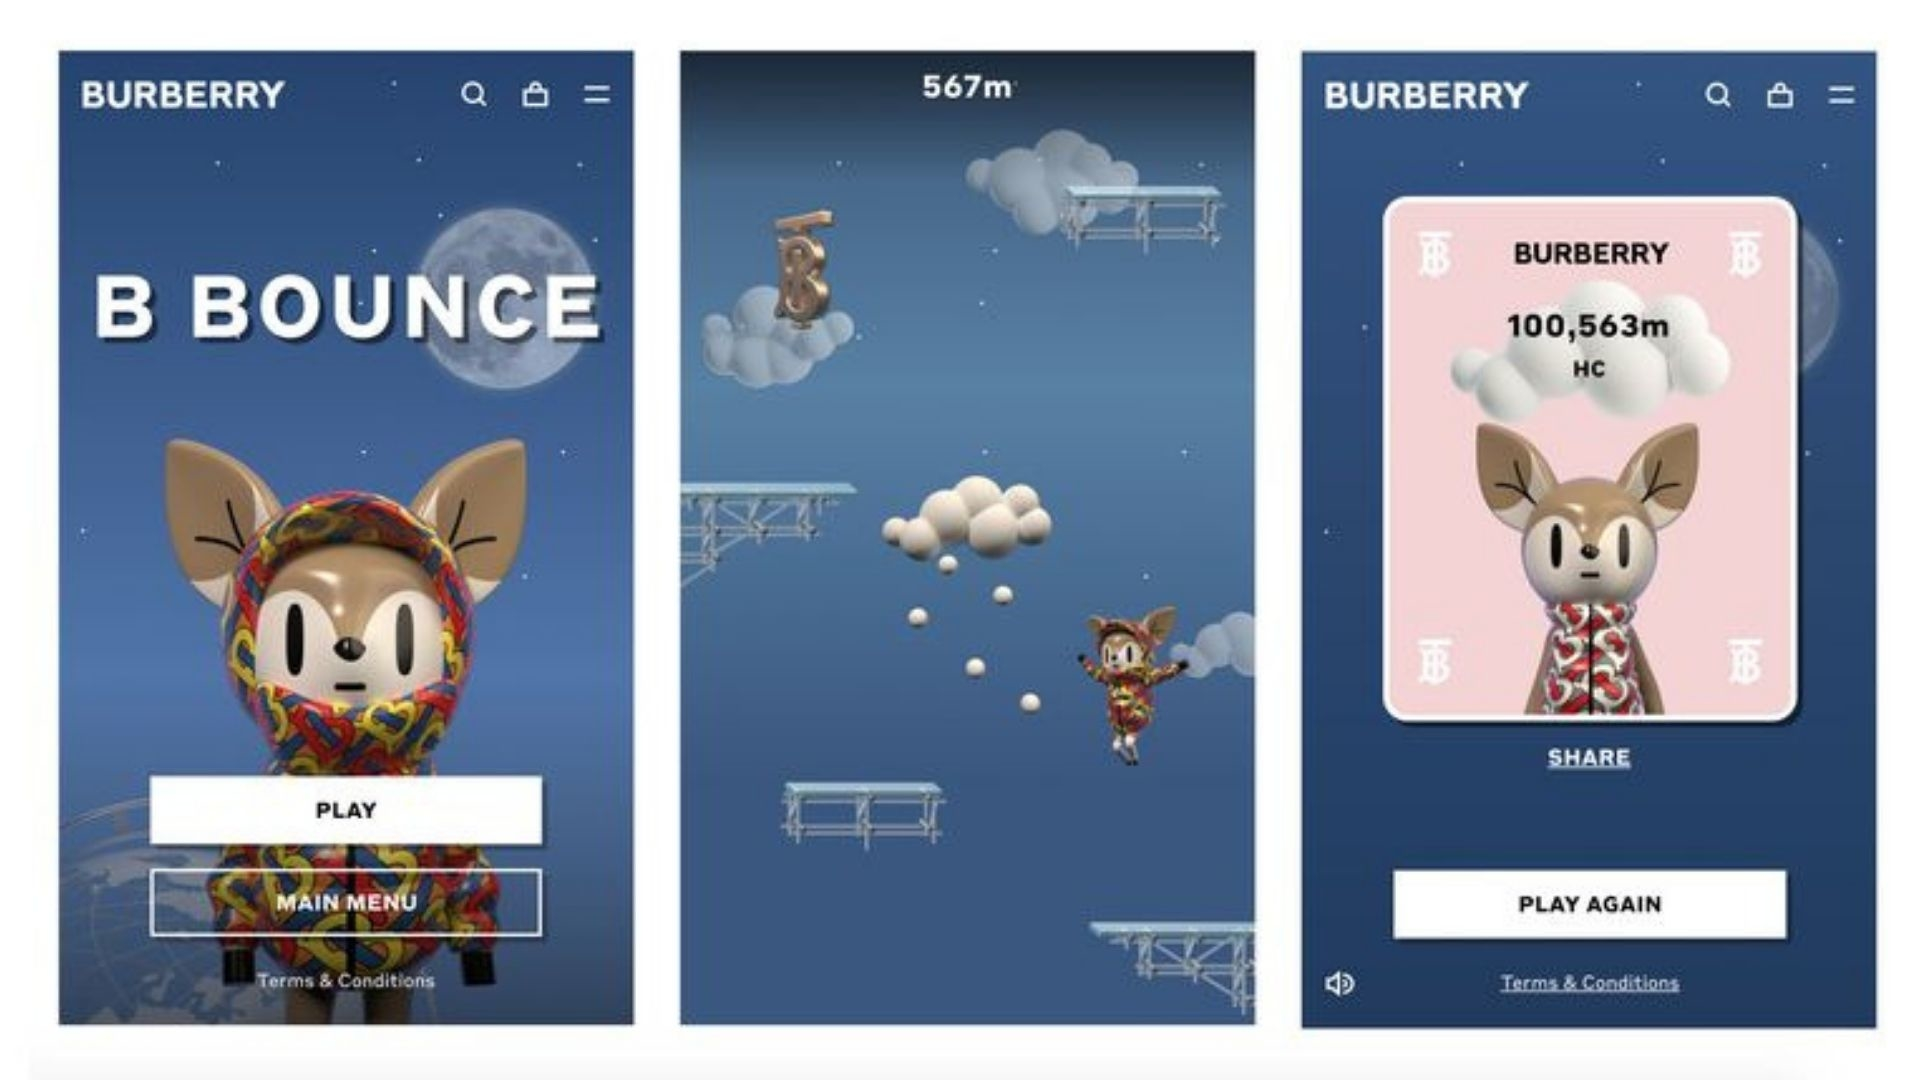 Burberry Launches Its First Fashion Game And It's Very Addictive